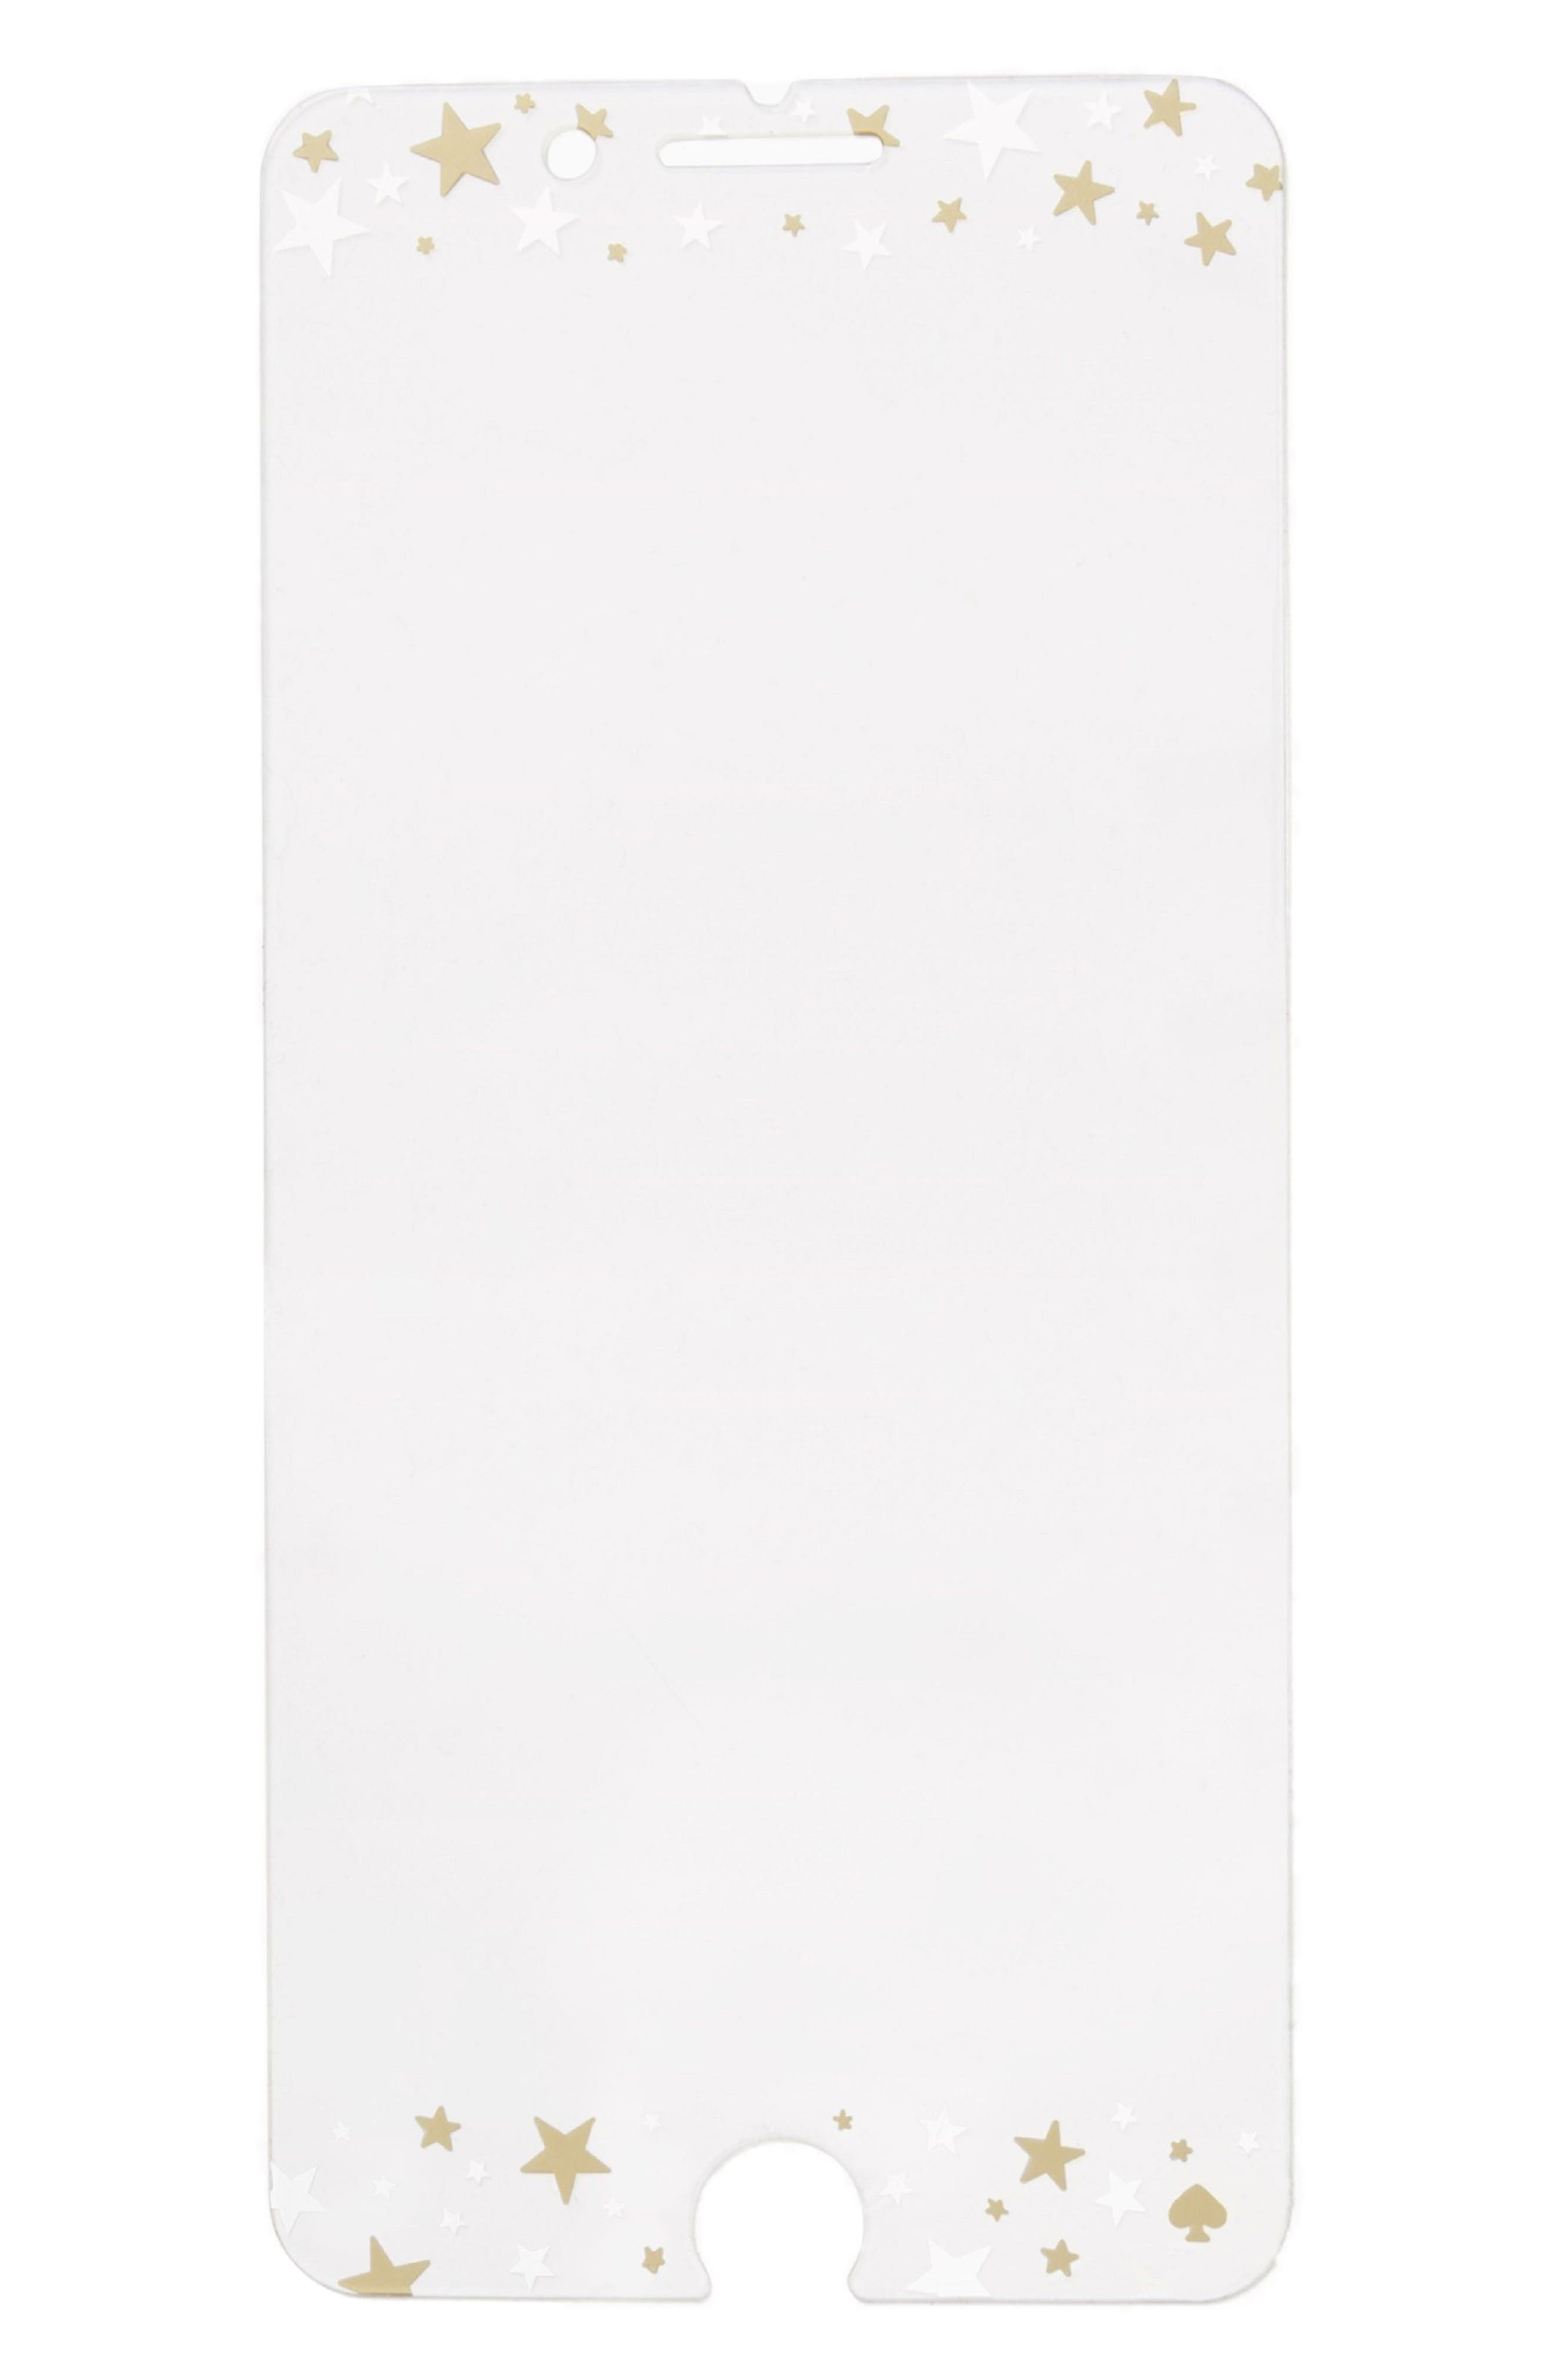 star screen cover for iPhone 7/8 & 7/8 Plus,                         Main,                         color, 710